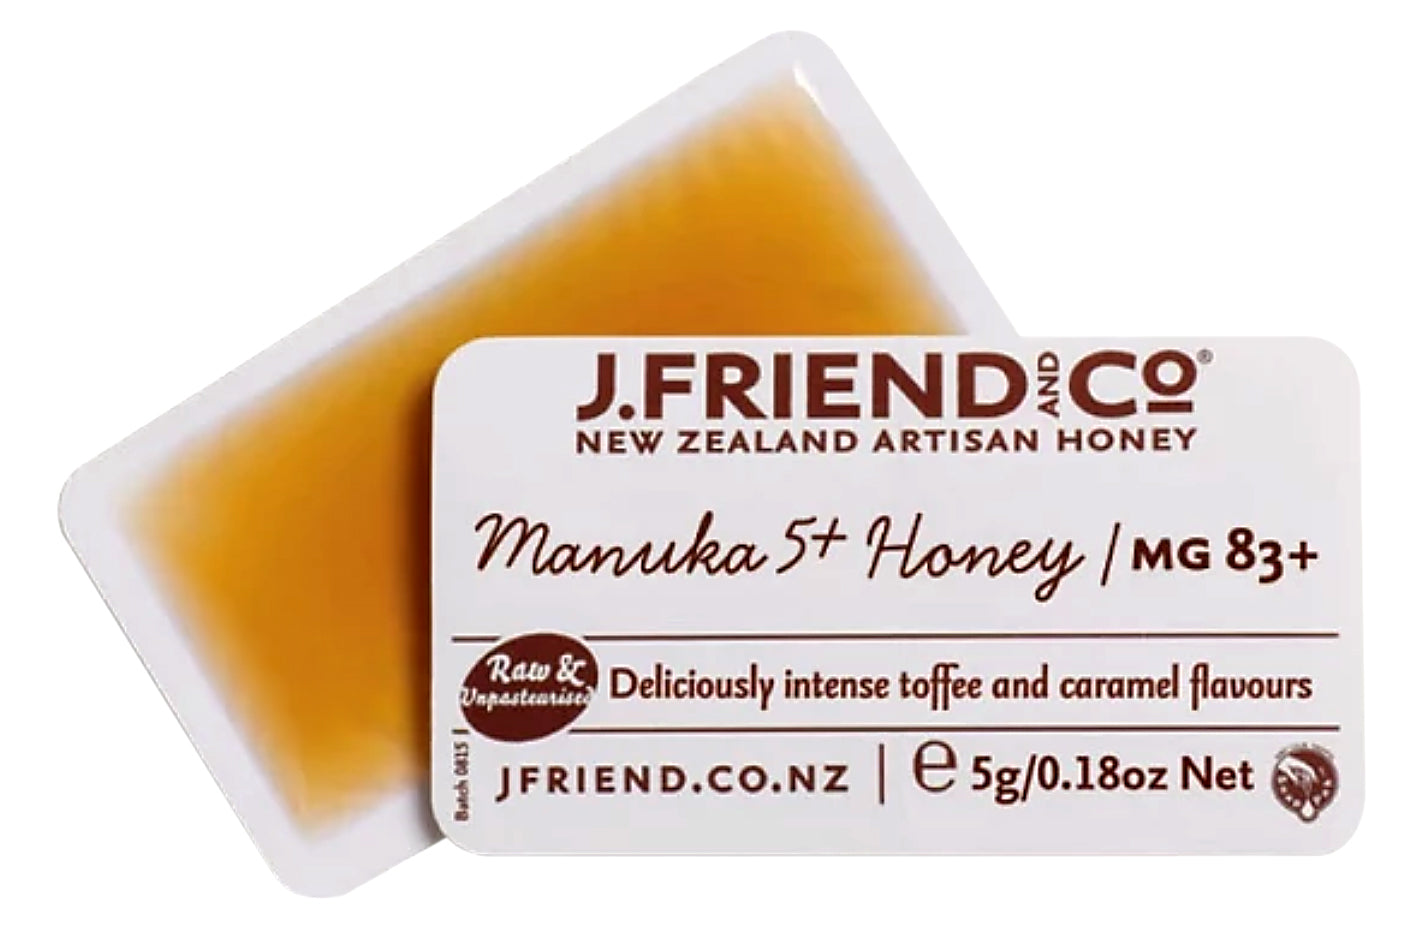 J Friend and Co- Raw and Unpasteurised Manuka 5+ / MG 83+ Honey 5g, single snap, Deliciously intense toffee and caramel flavours